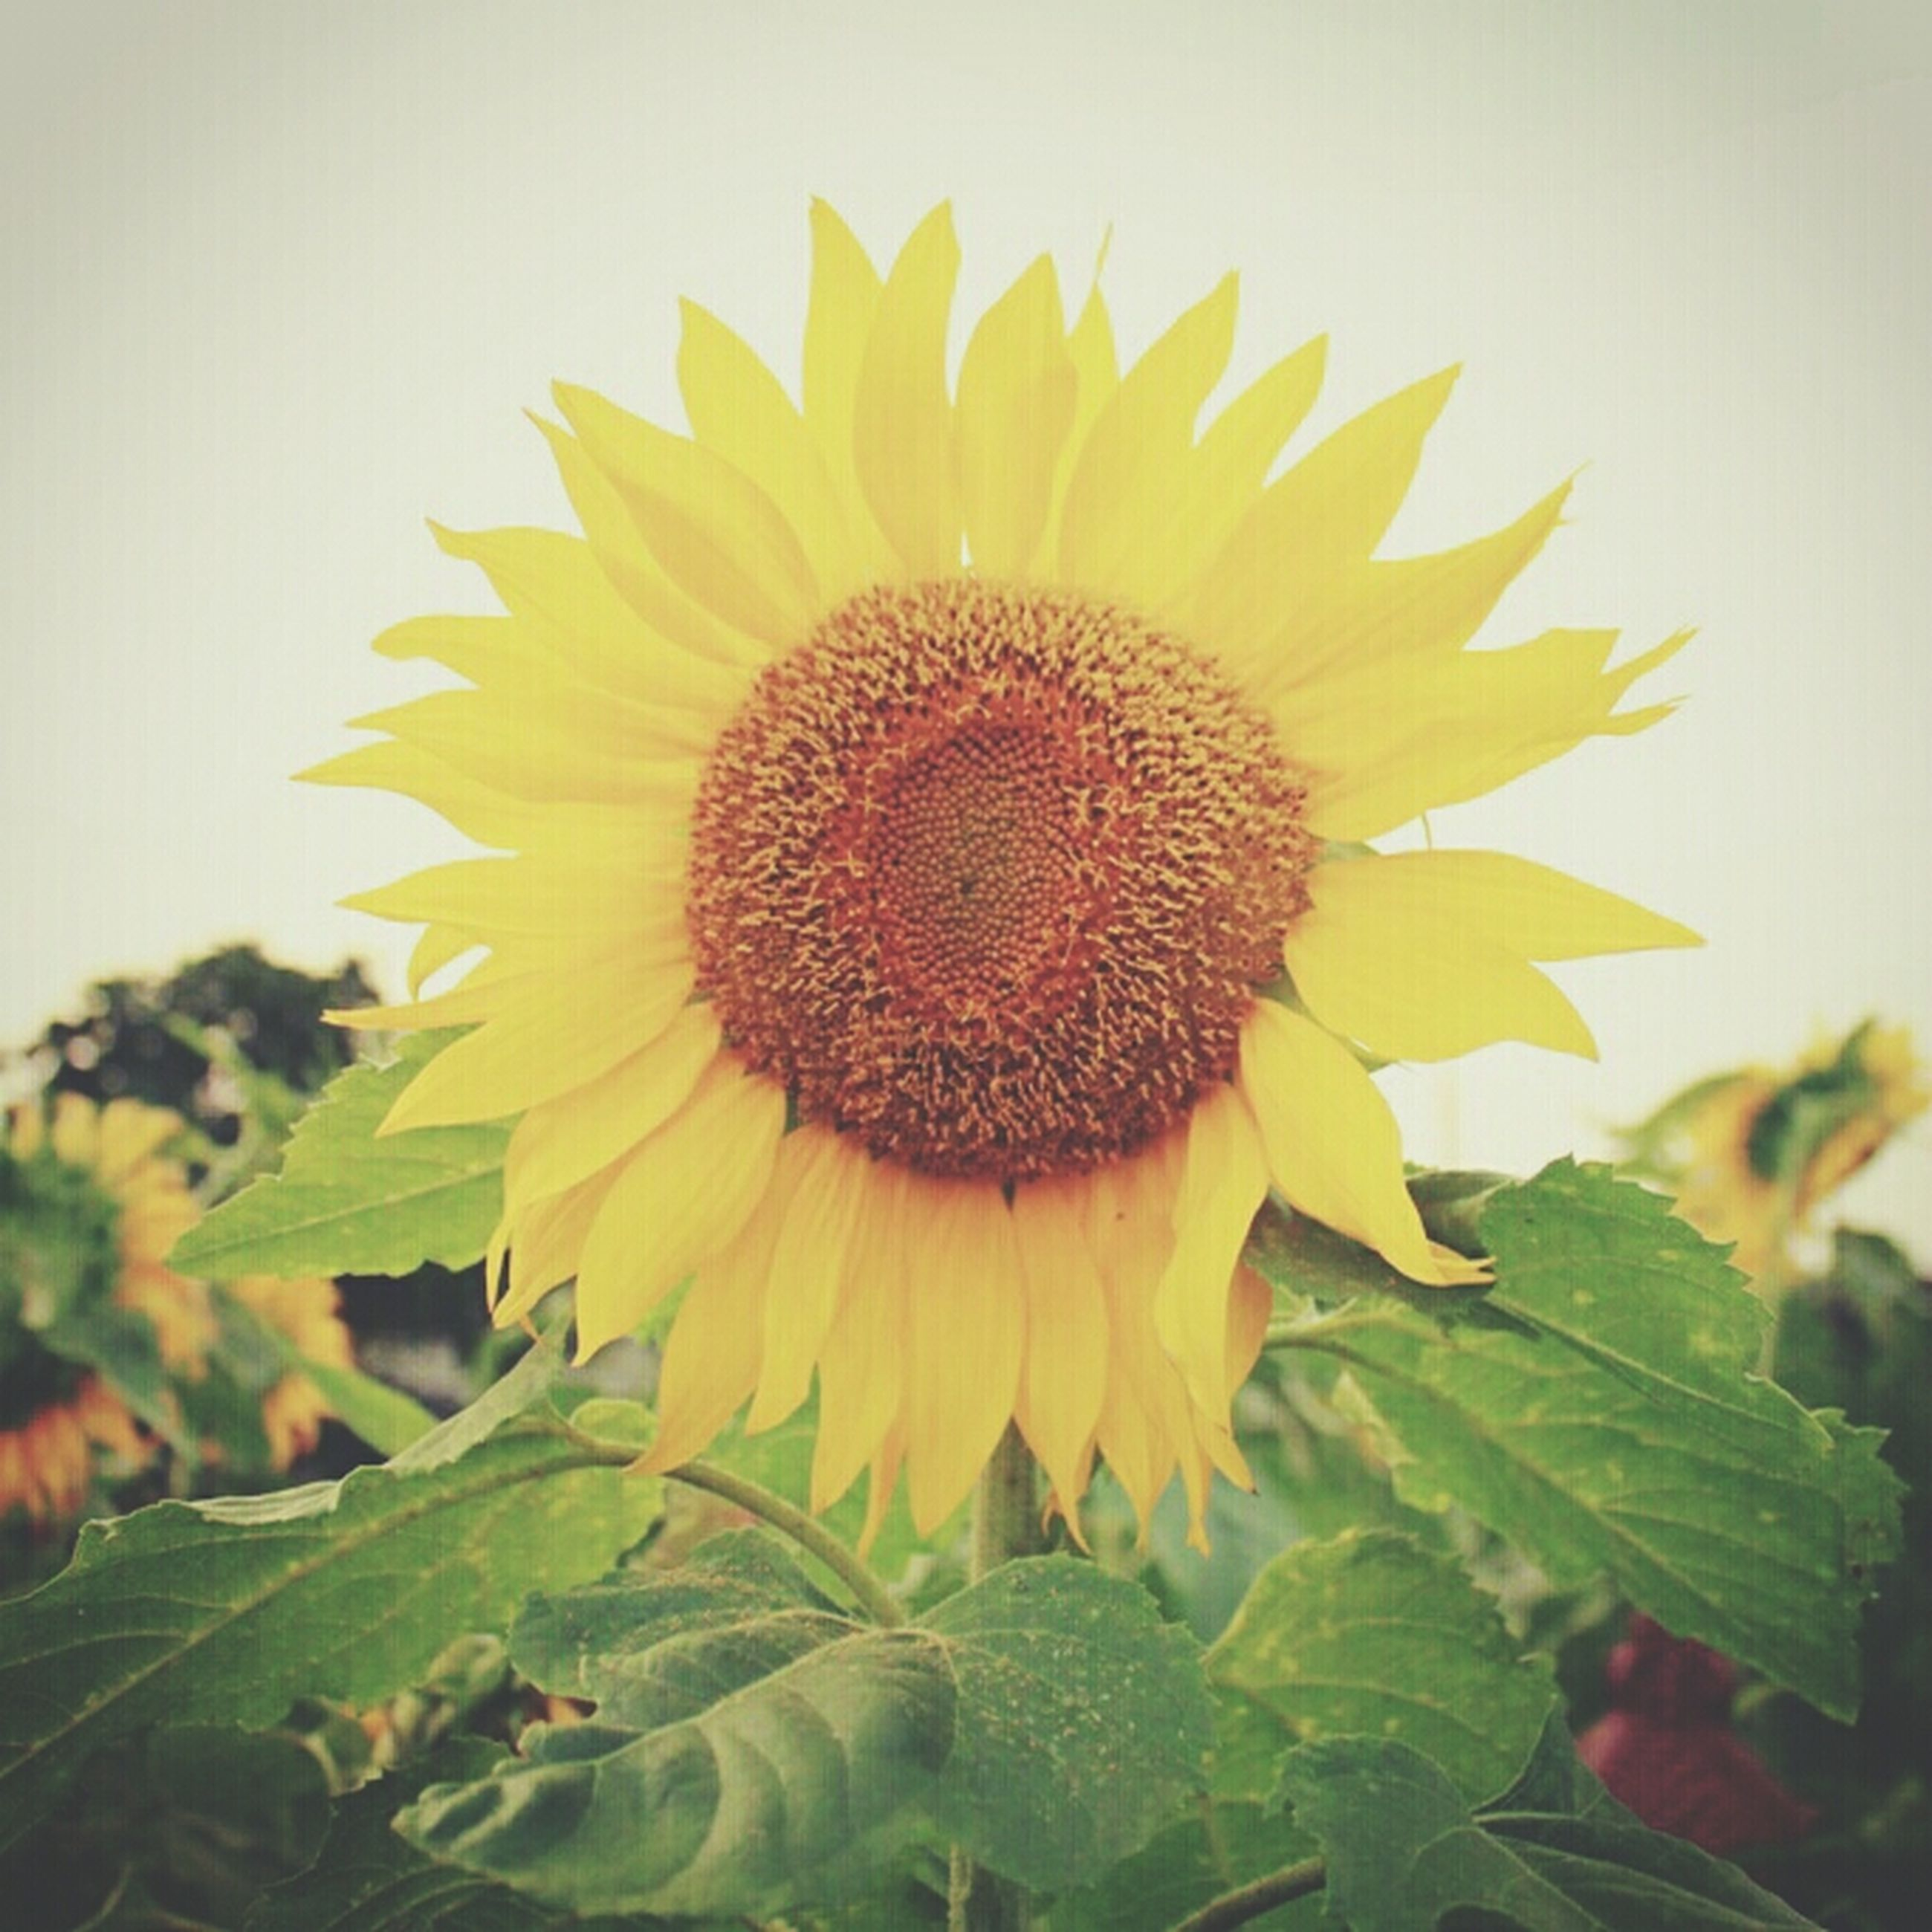 flower, sunflower, flower head, freshness, fragility, yellow, petal, growth, beauty in nature, leaf, single flower, plant, close-up, pollen, blooming, nature, in bloom, focus on foreground, no people, day